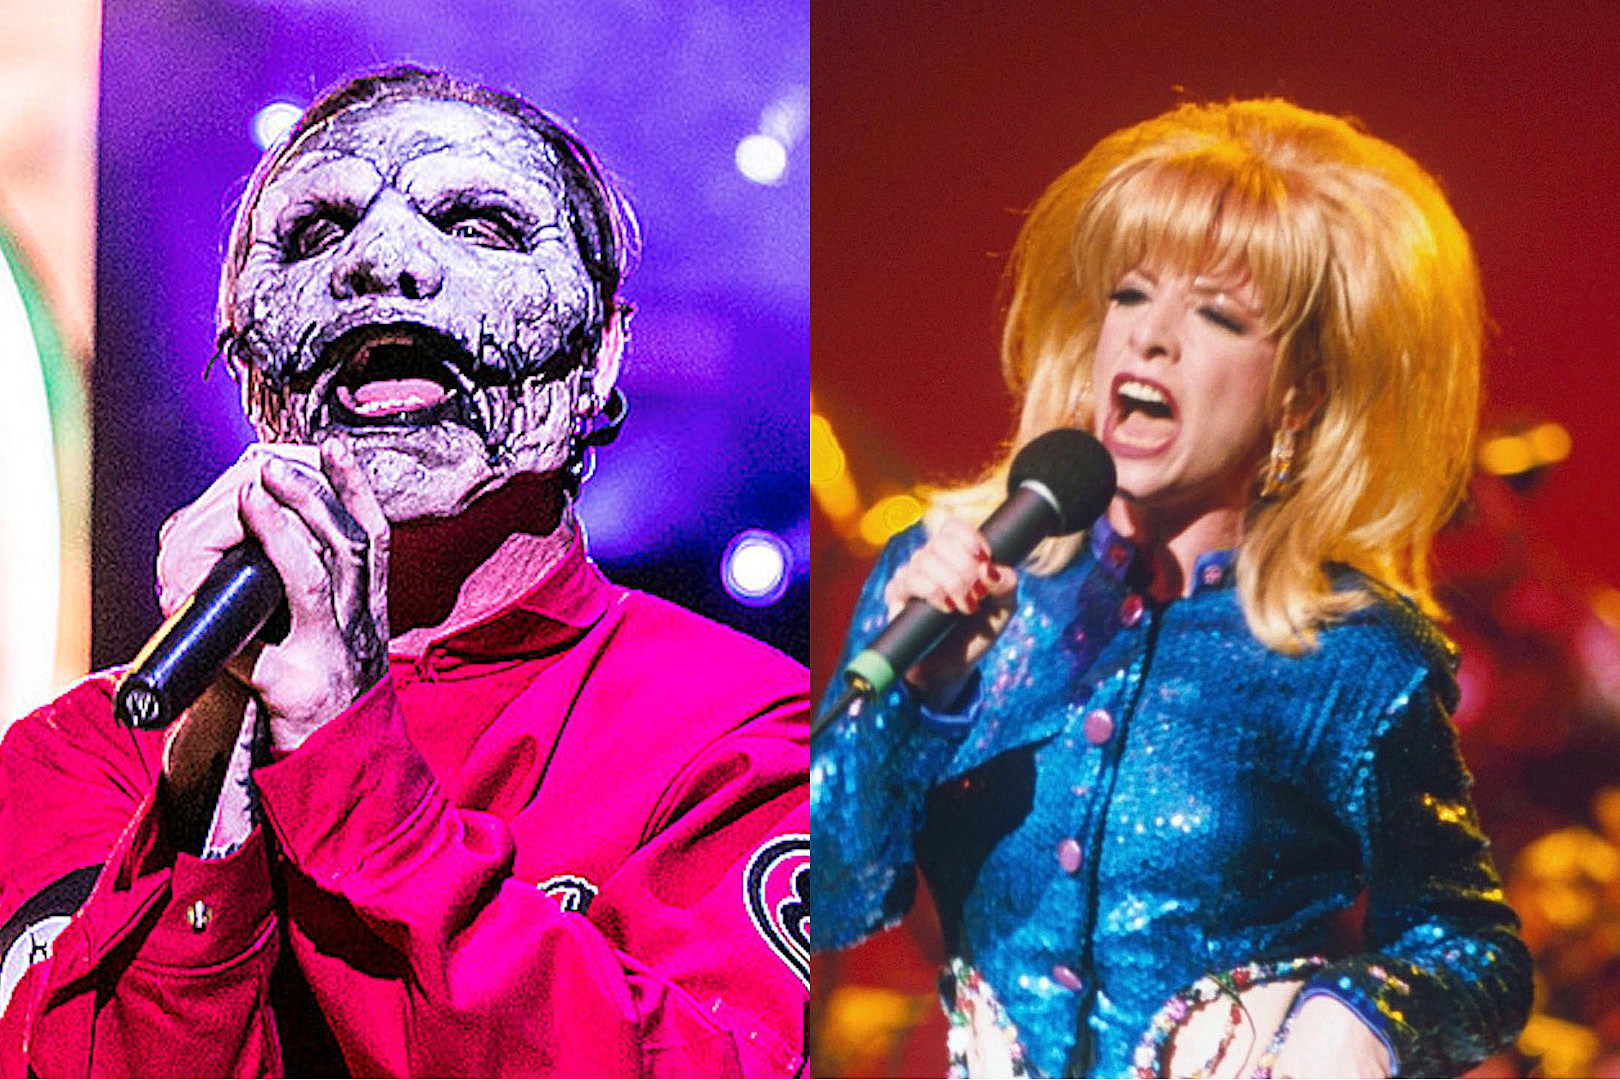 Slipknot May Be Sold Out, But You Can Still Get Tickets With Us!